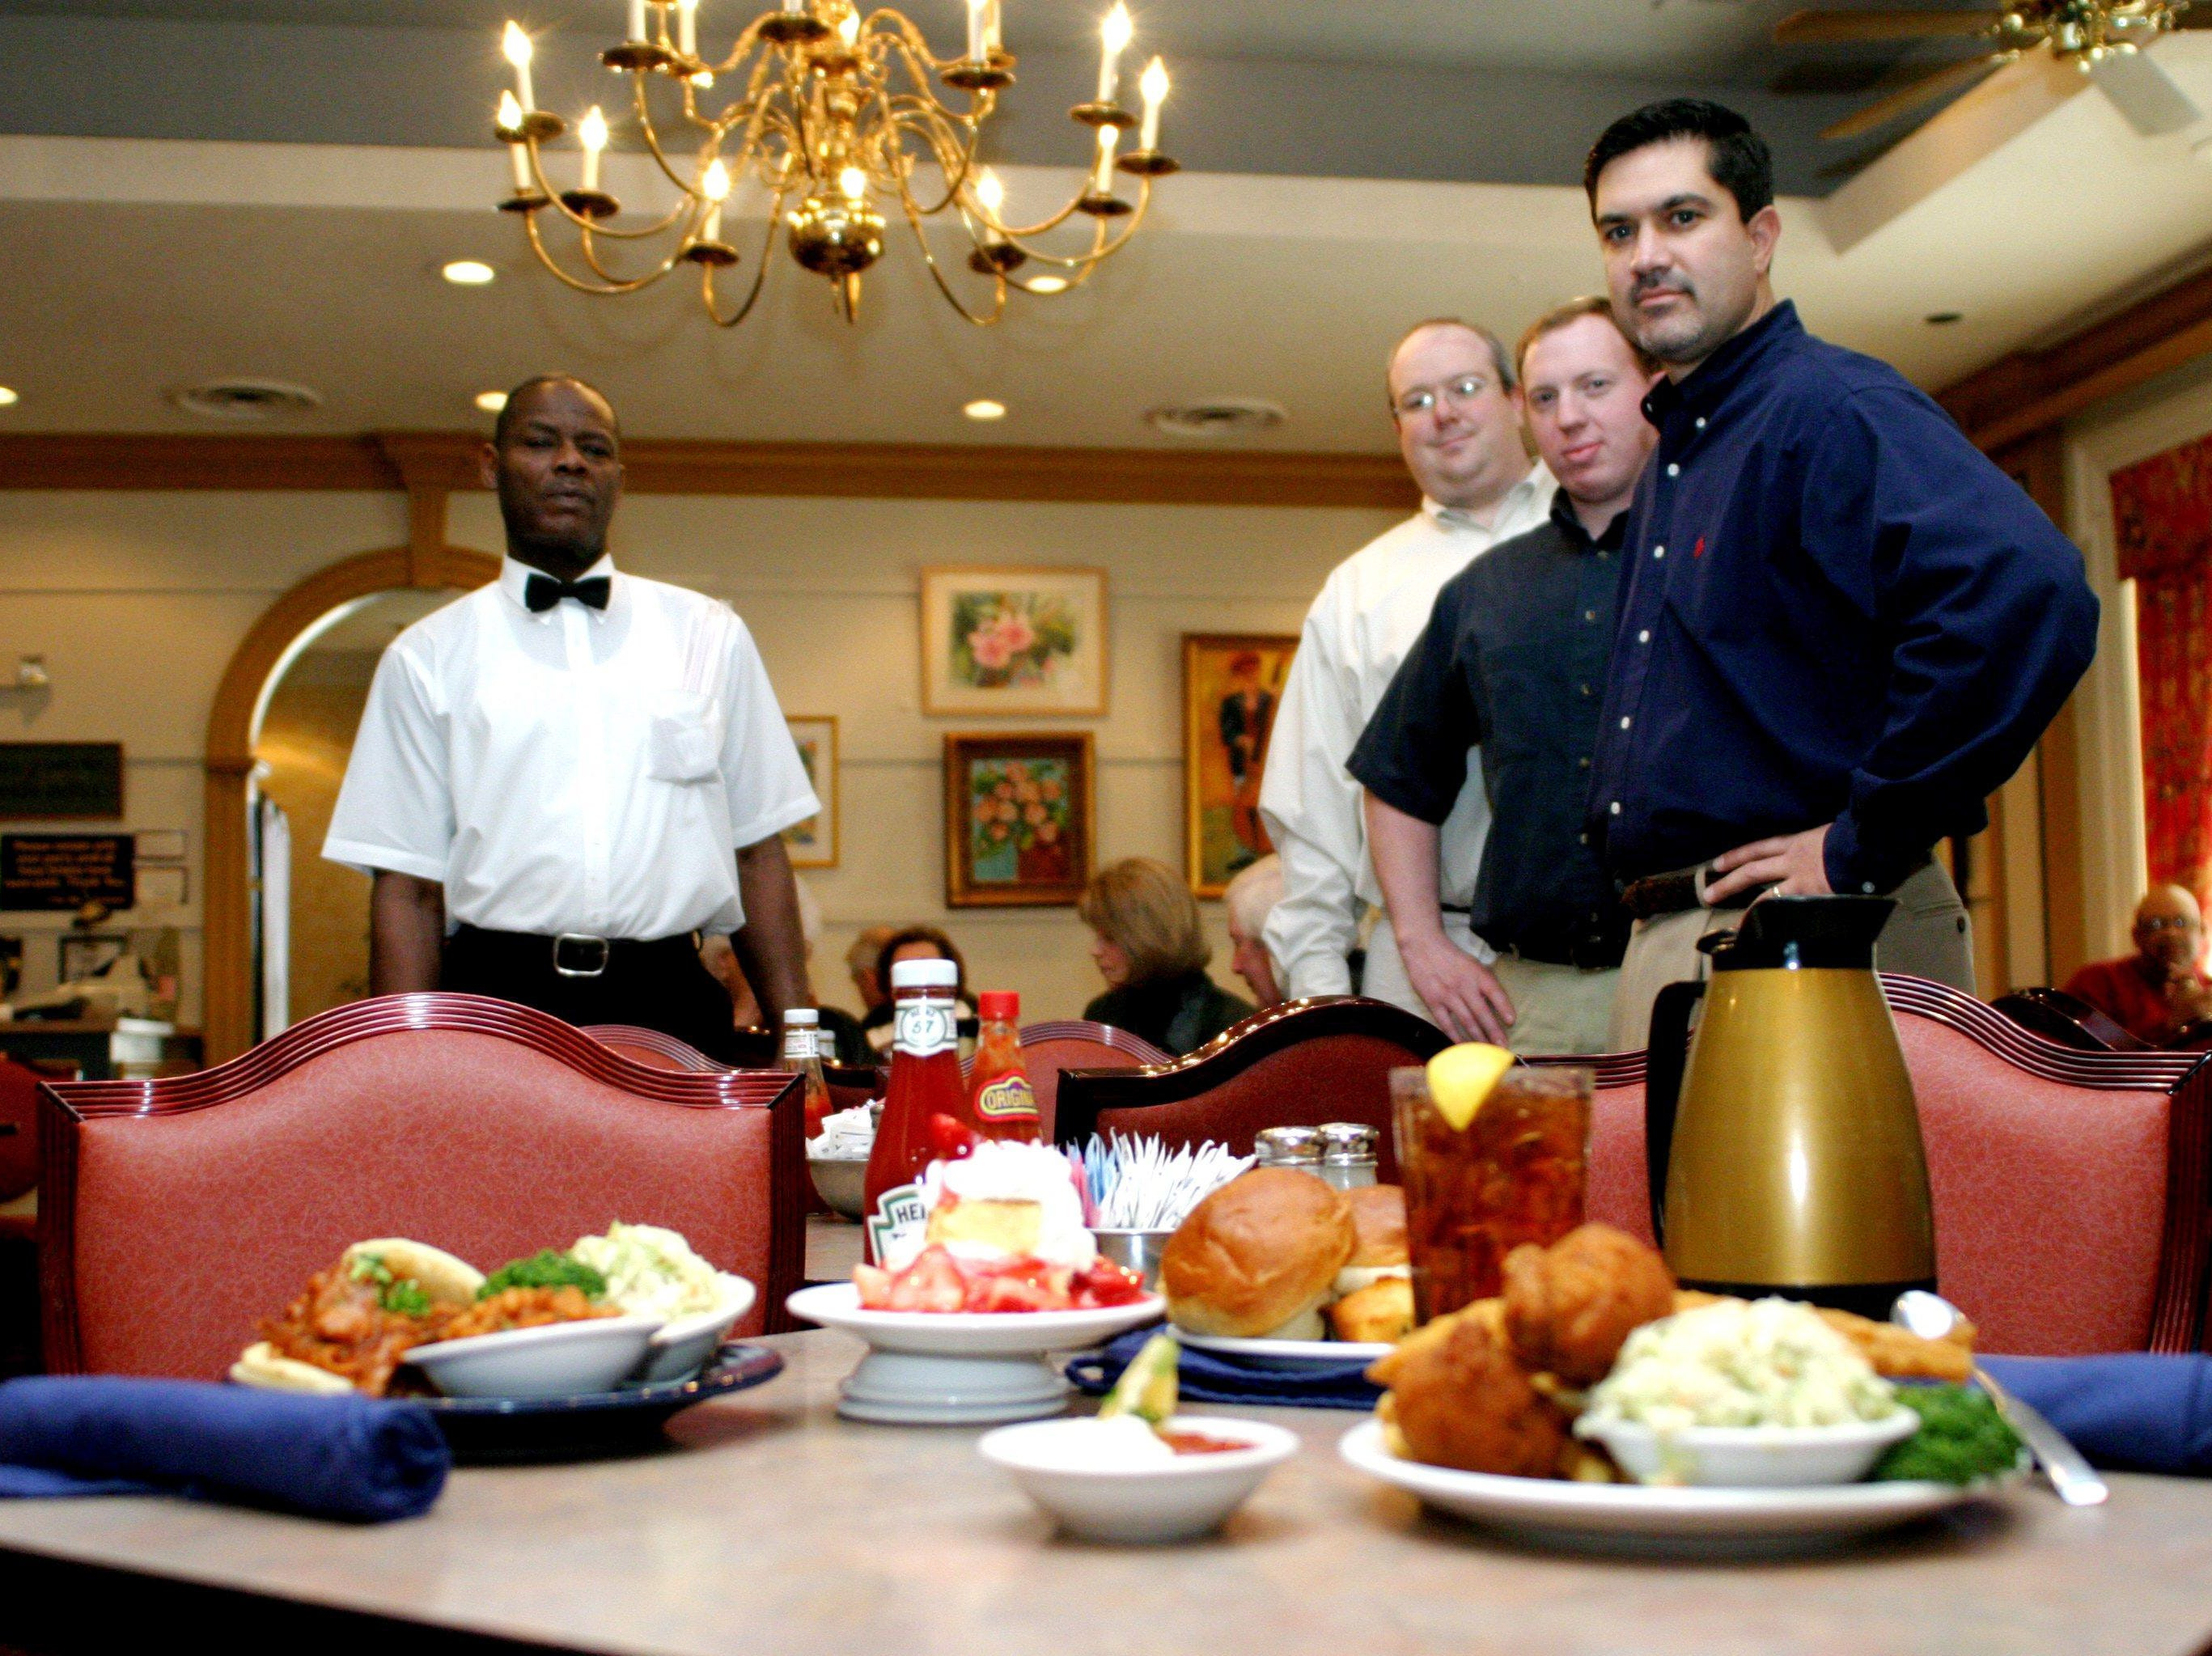 Robert Zirter, Corey Nix, Jeff Watson and owner Brian Glasser stand in The Belle Meade Cafeteria  Dec. 31, 2003 which is the city's oldest free standing restaurant.